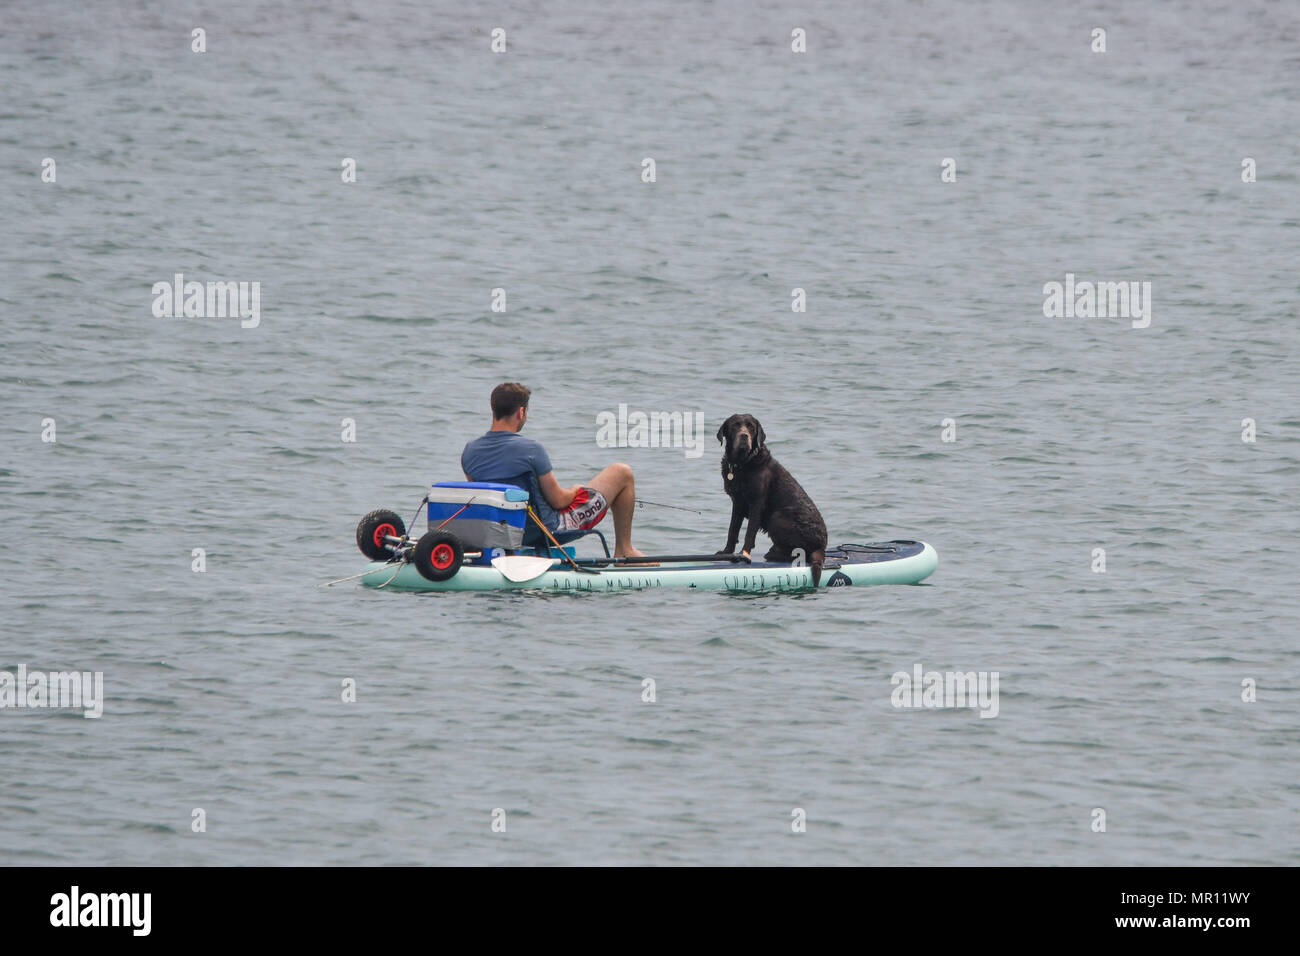 Longrock, Cornwall, UK, 25th May 2018. UK Weather. It was warm and sunny this afternoon on the sea near Marazion. This man and his dog had some quality time out fishing together on their paddleboard. Credit: Simon Maycock/Alamy Live News - Stock Image